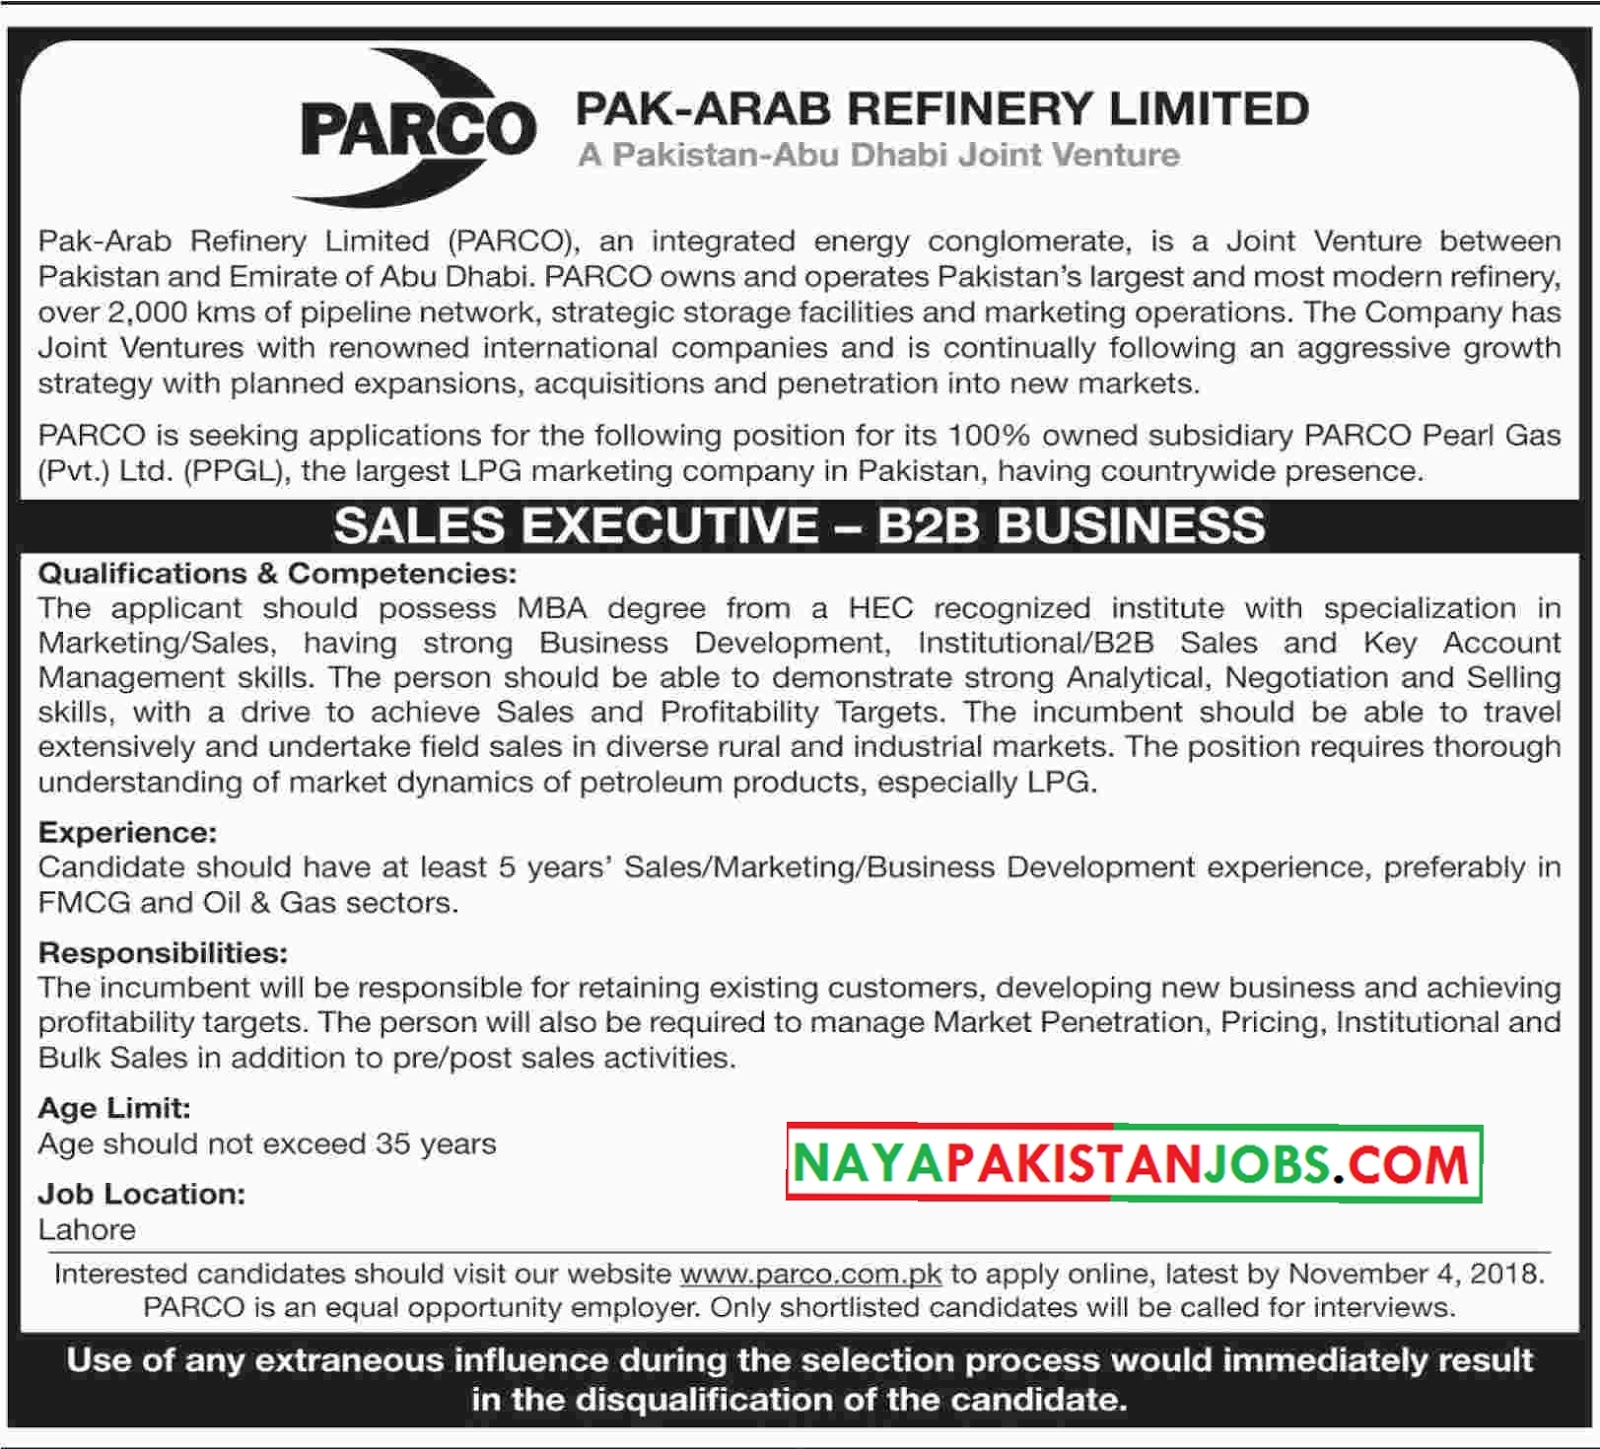 Latest Vacancies Announced in Pak Arab Refinery Limited PARCO 22 October 2018 - Naya Pakistan